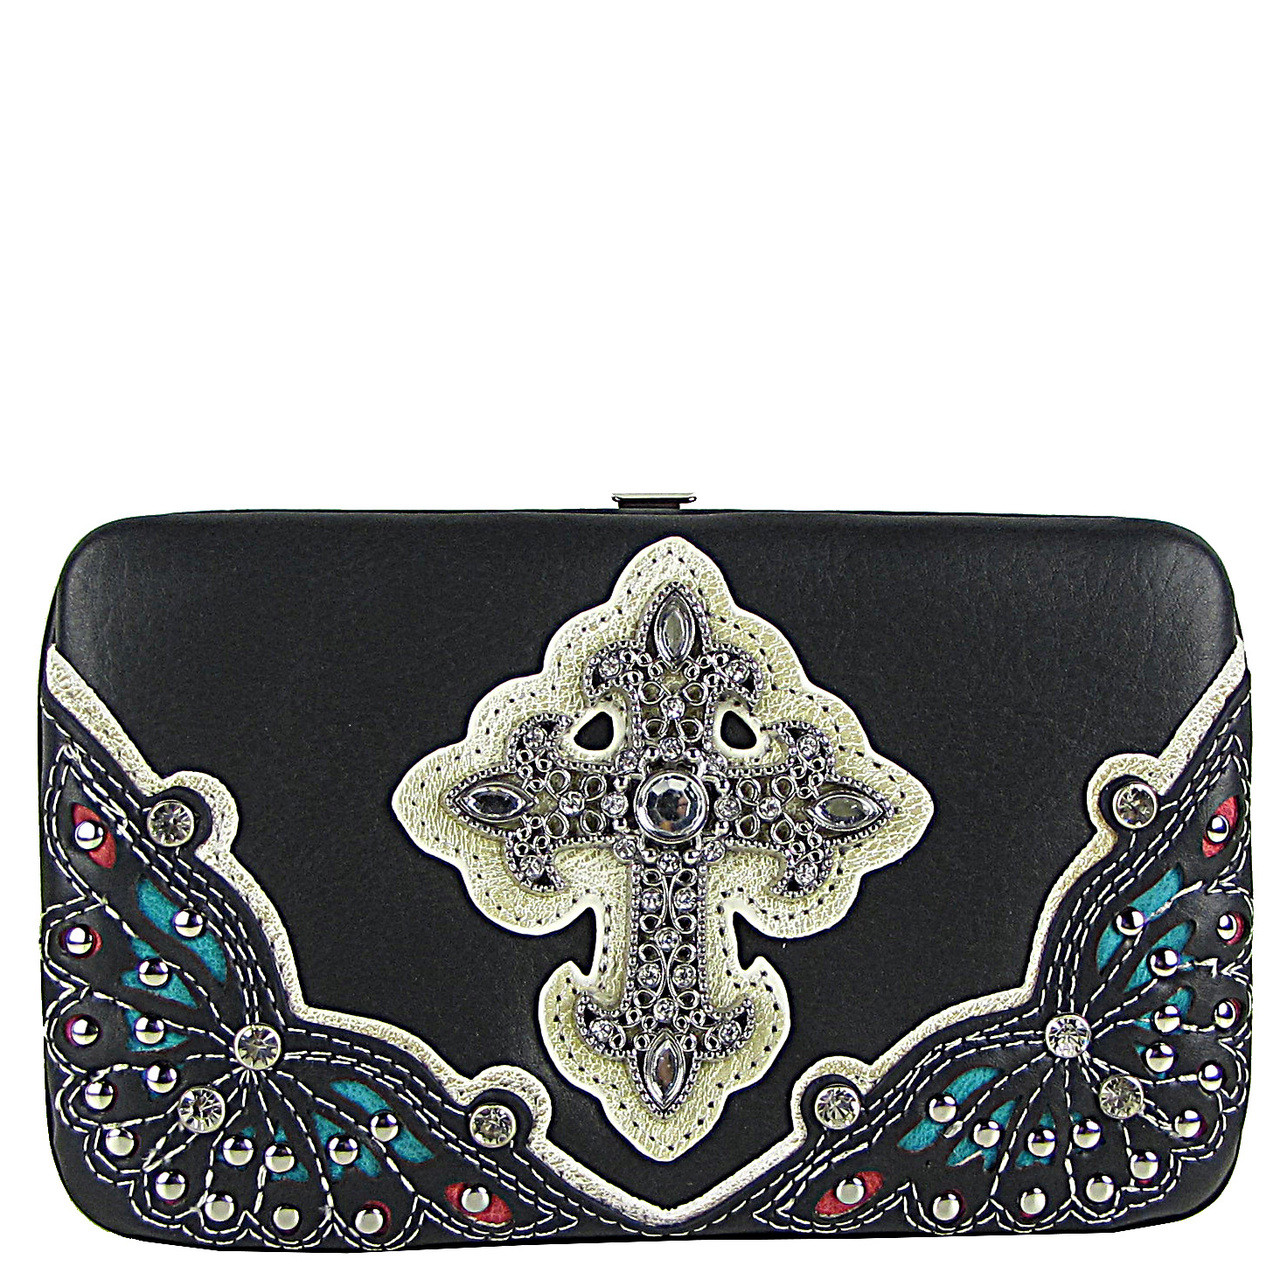 BLACK RHINESTONE CROSS WESTERN FLAT THICK WALLET FW2-04116BLK